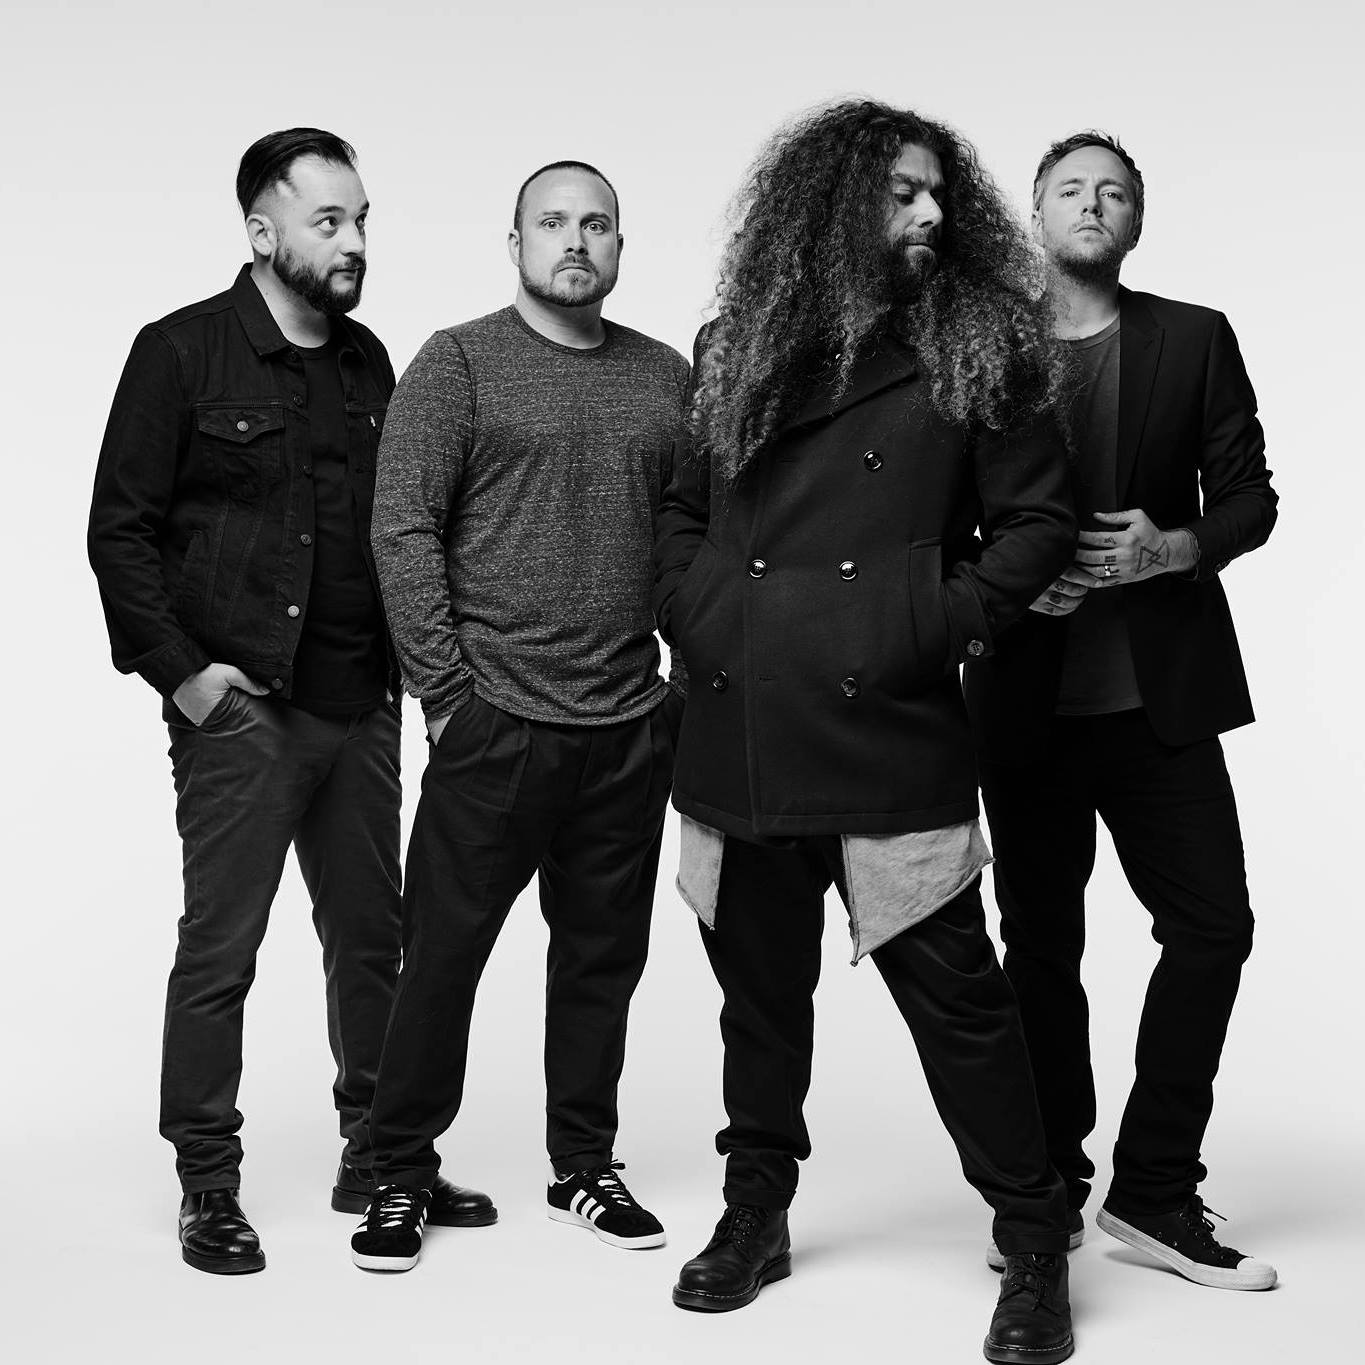 Did Coheed and Cambria Just Create a New Genre?